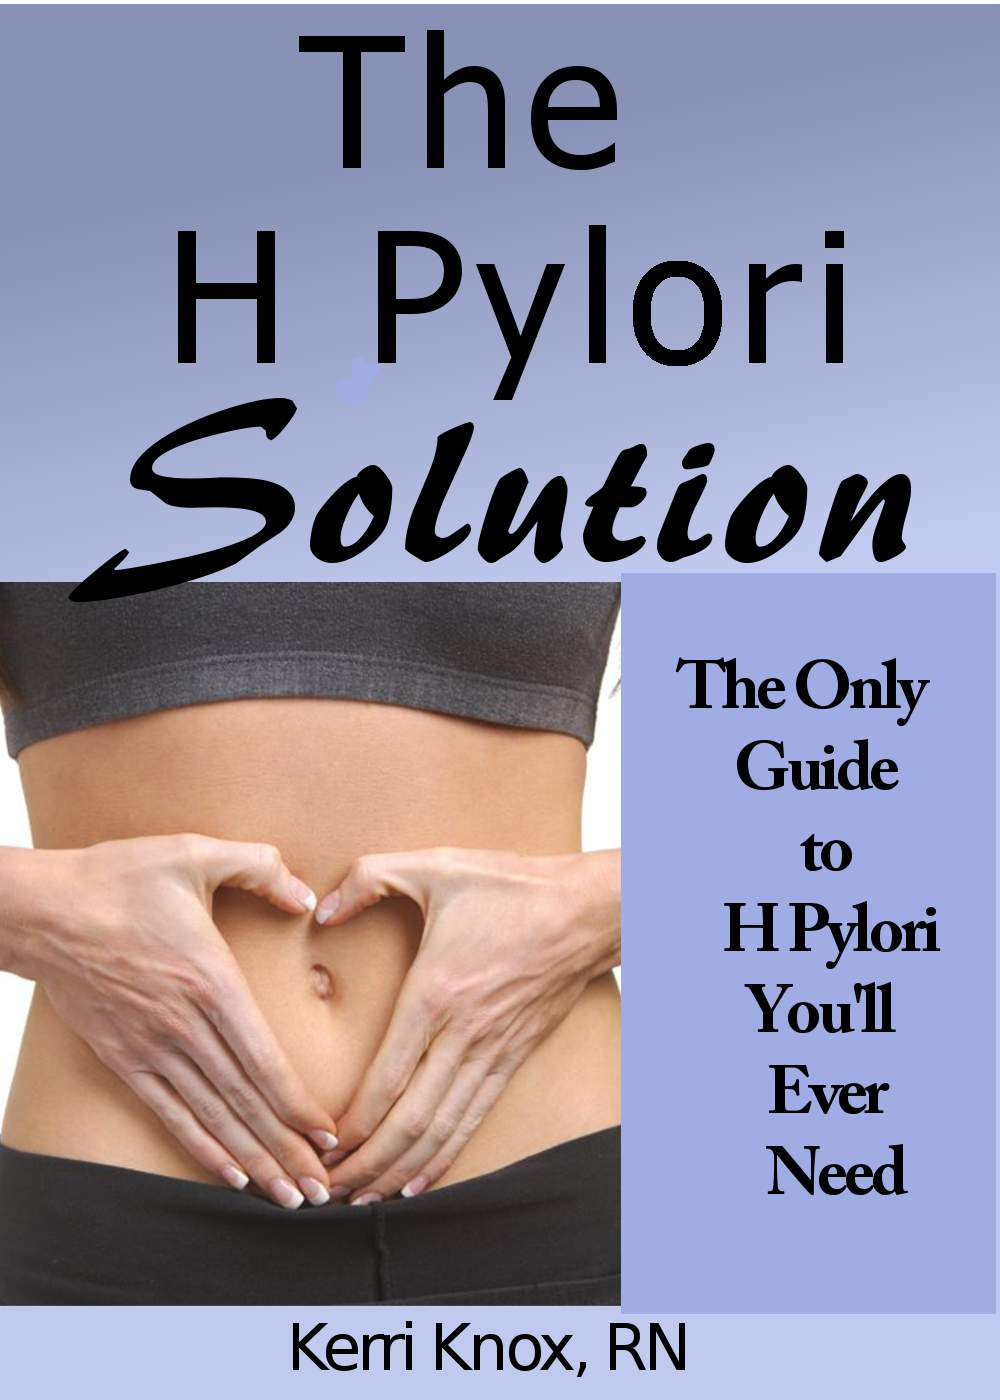 The H Pylori Solution, your Step by step program to eliminate and eradicate H pylori once and for all.